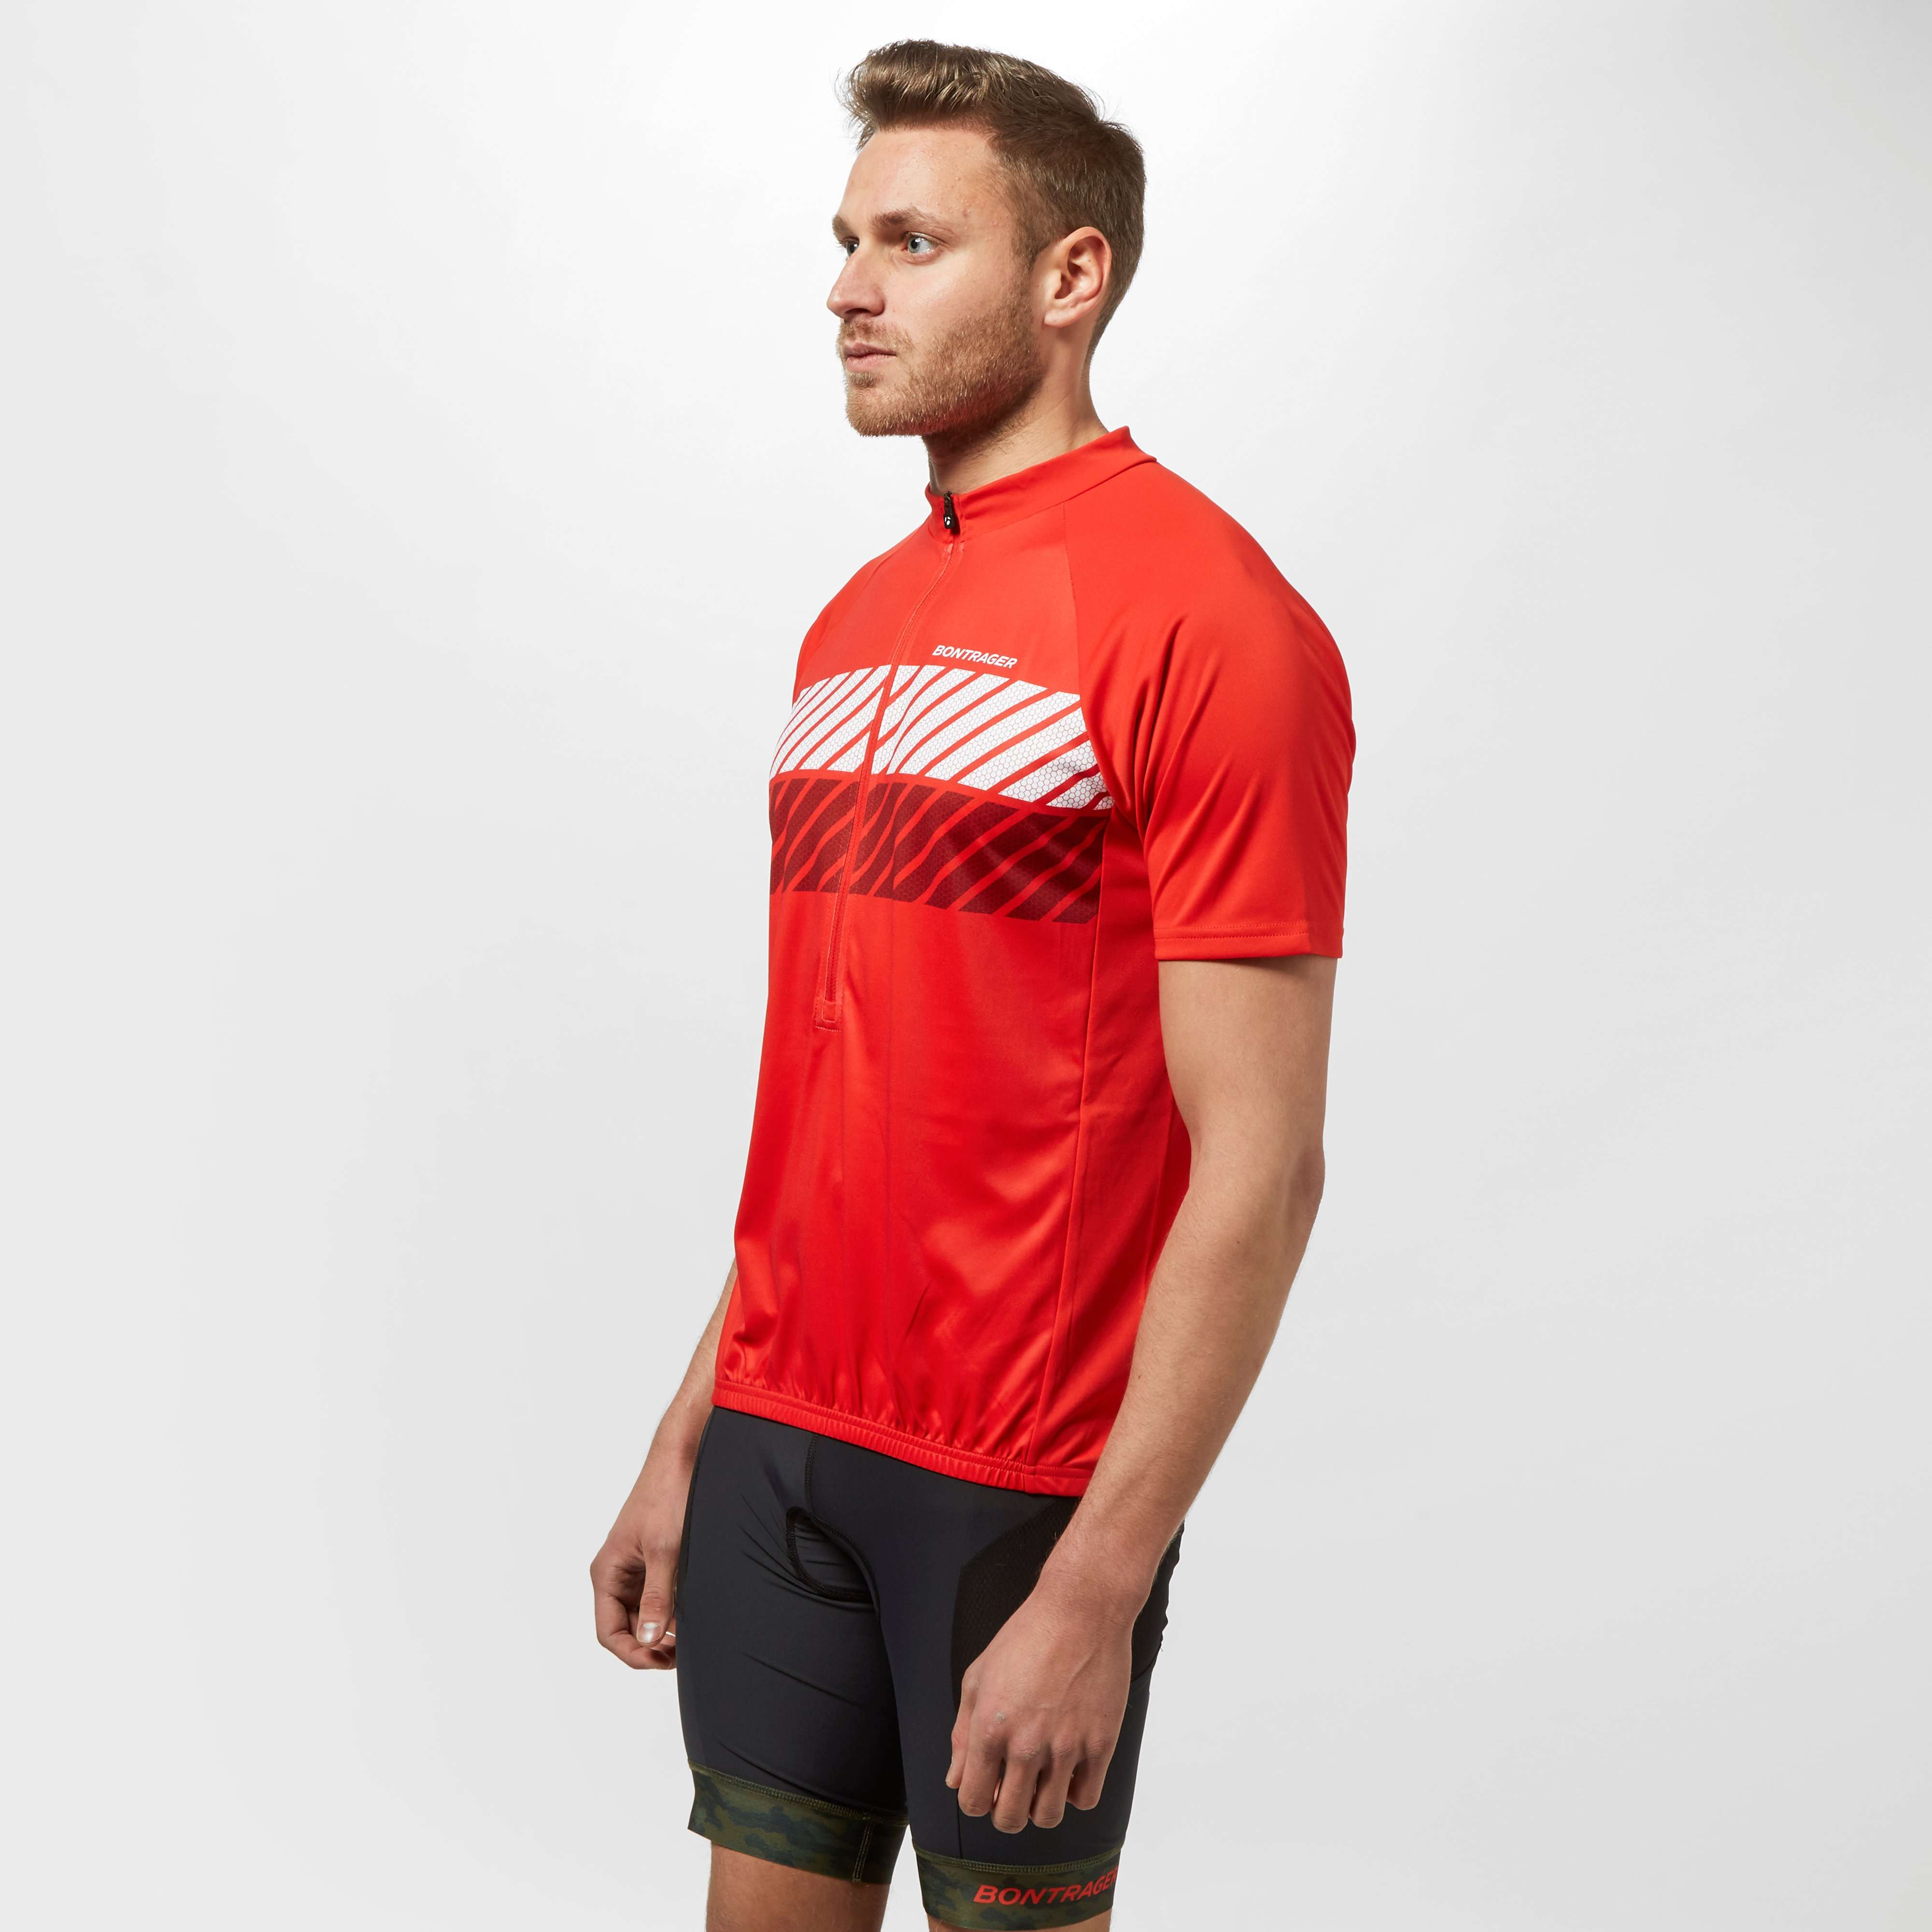 BONTRAGER Men's Solstice Cycling Jersey